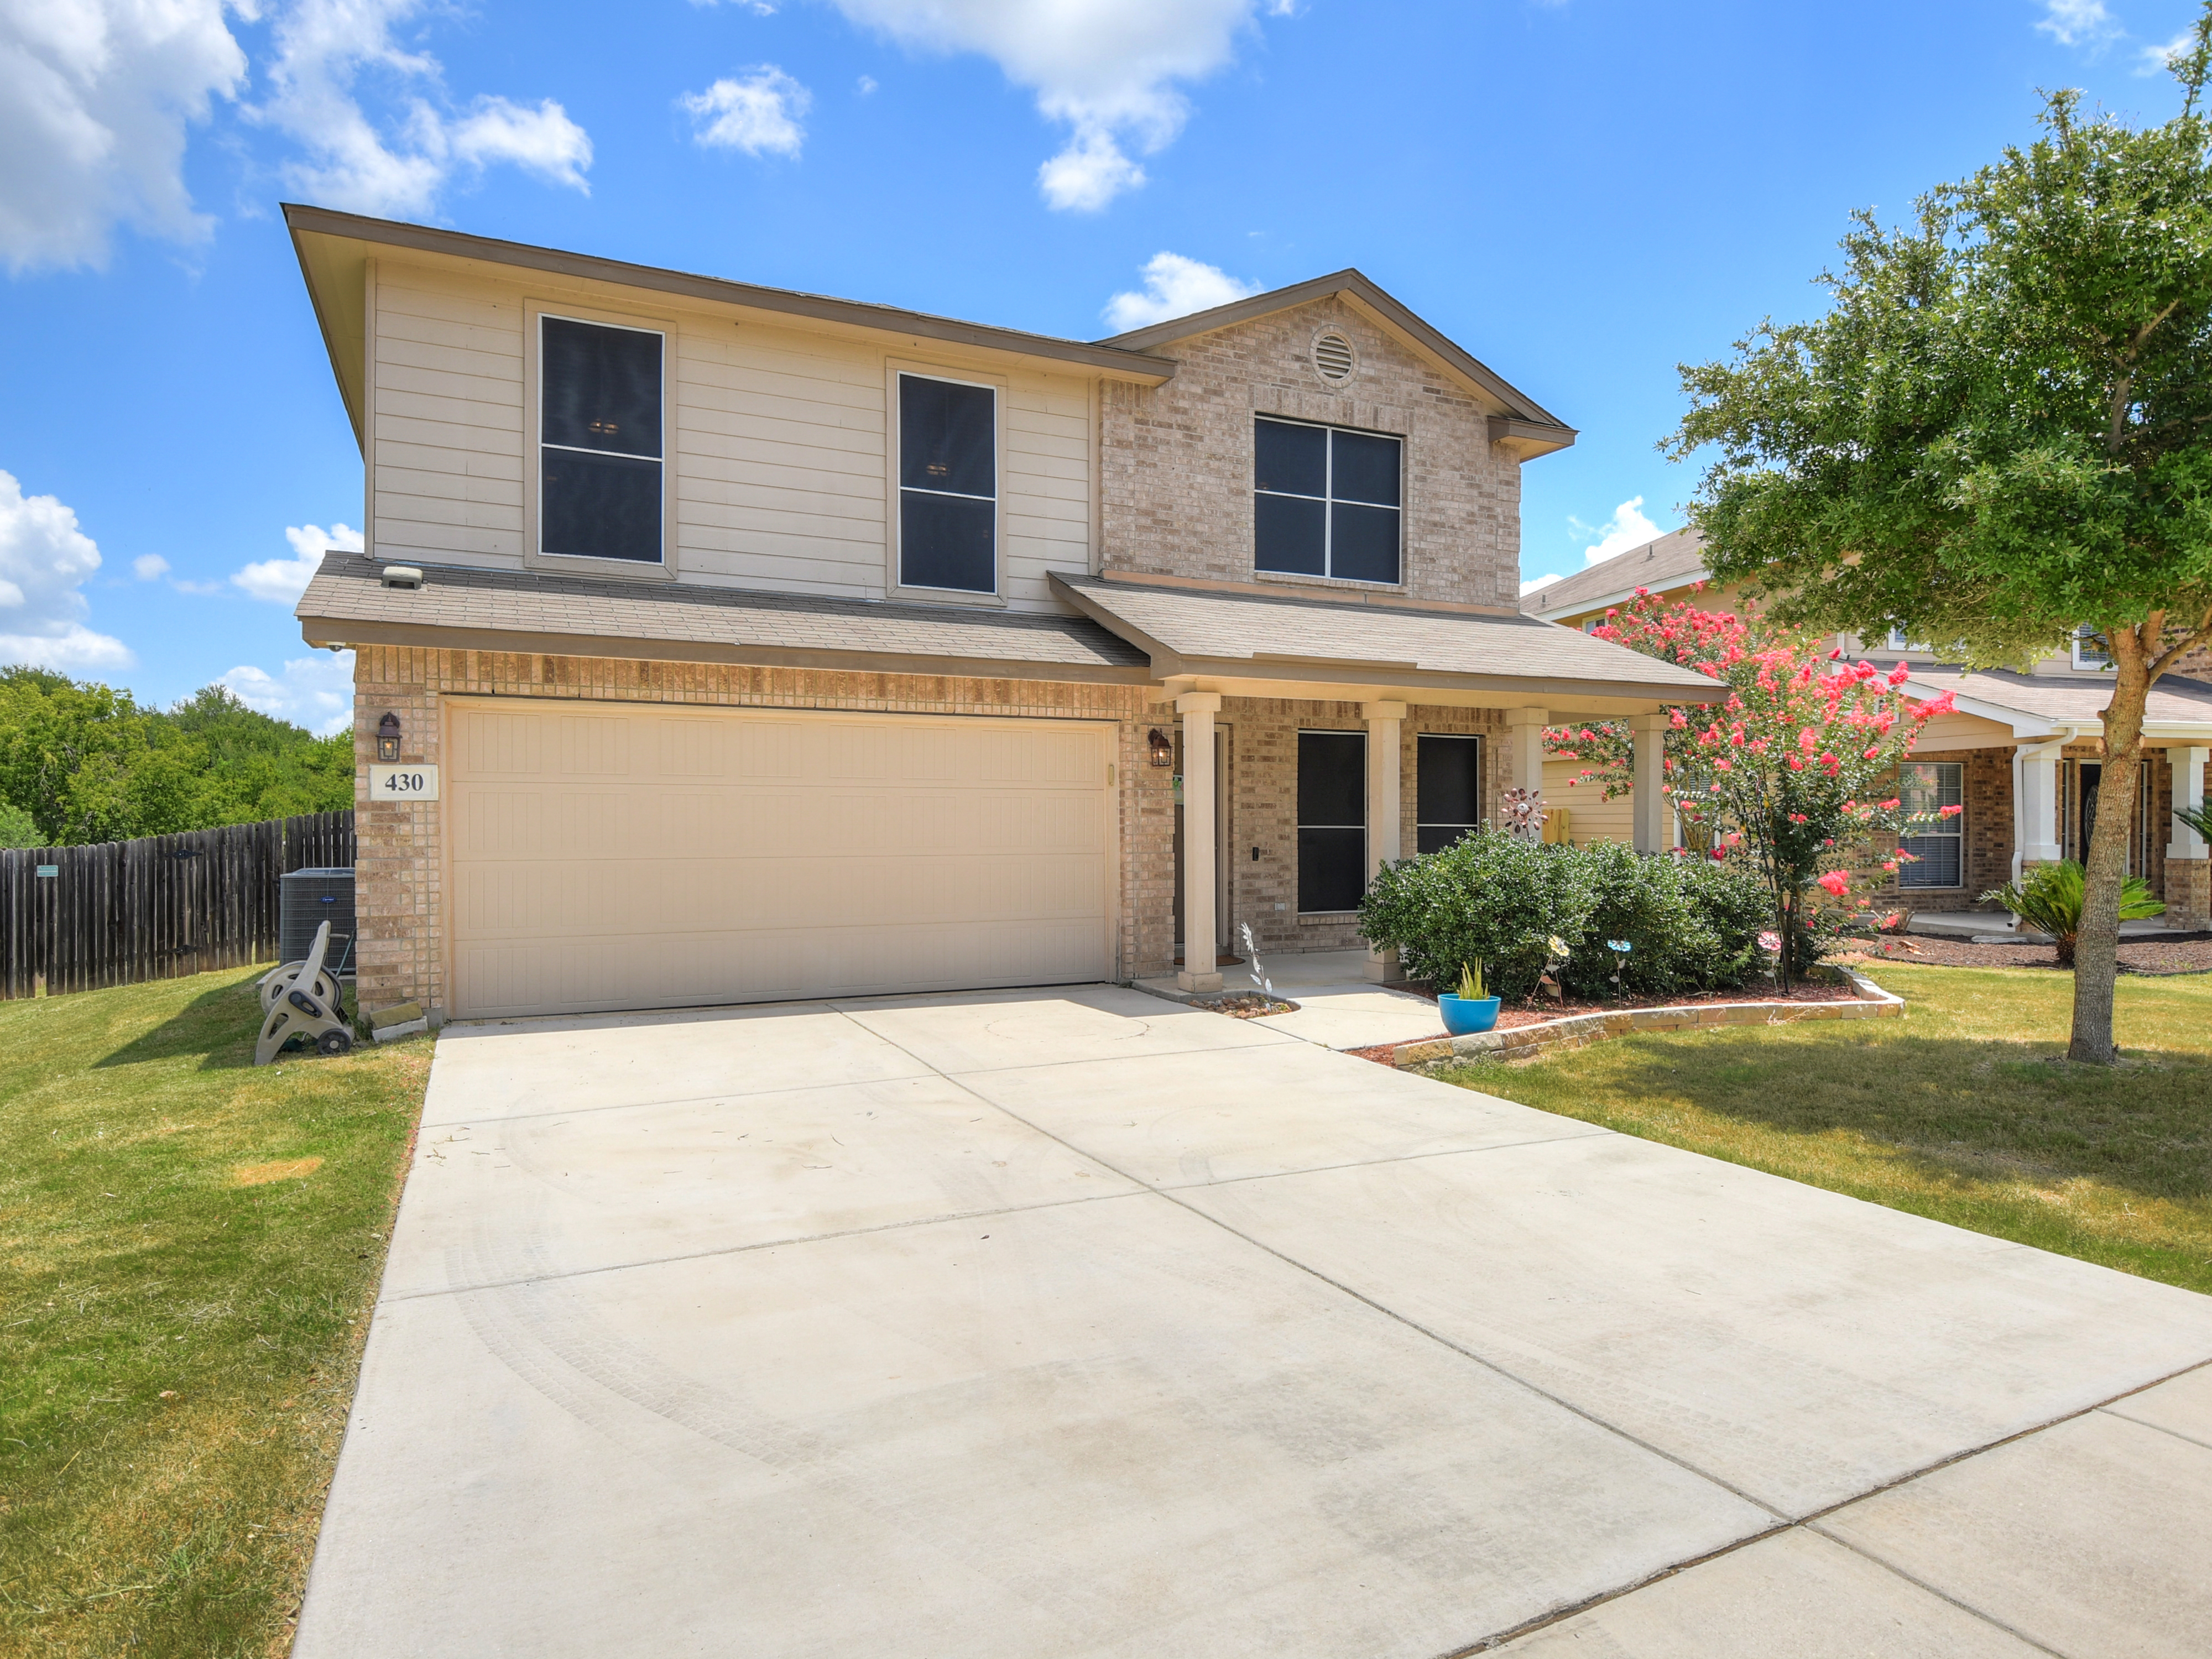 Single Family Home for sale in 430 Dolly Dr, Converse, Texas ,78109